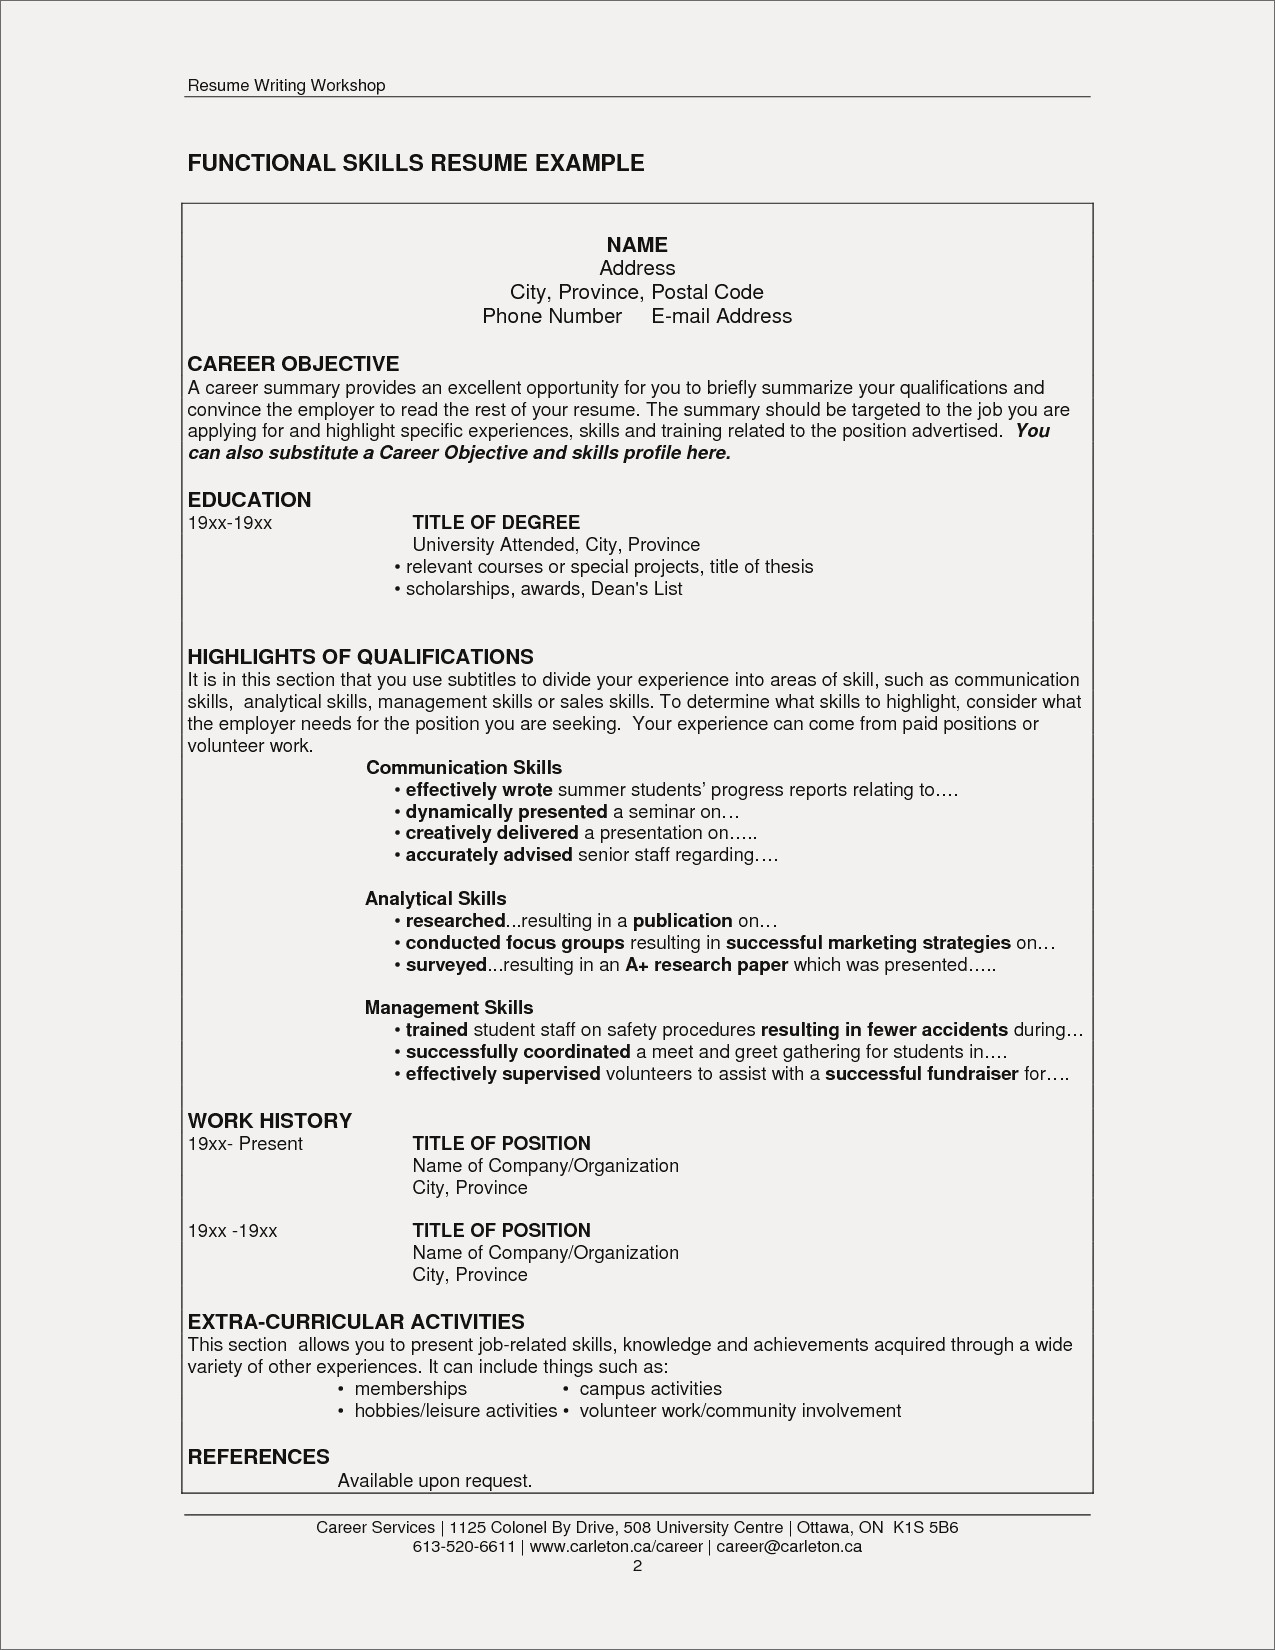 What to Include In Resume - Skills and Abilities to Put A Resume Refrence Resume Skills and